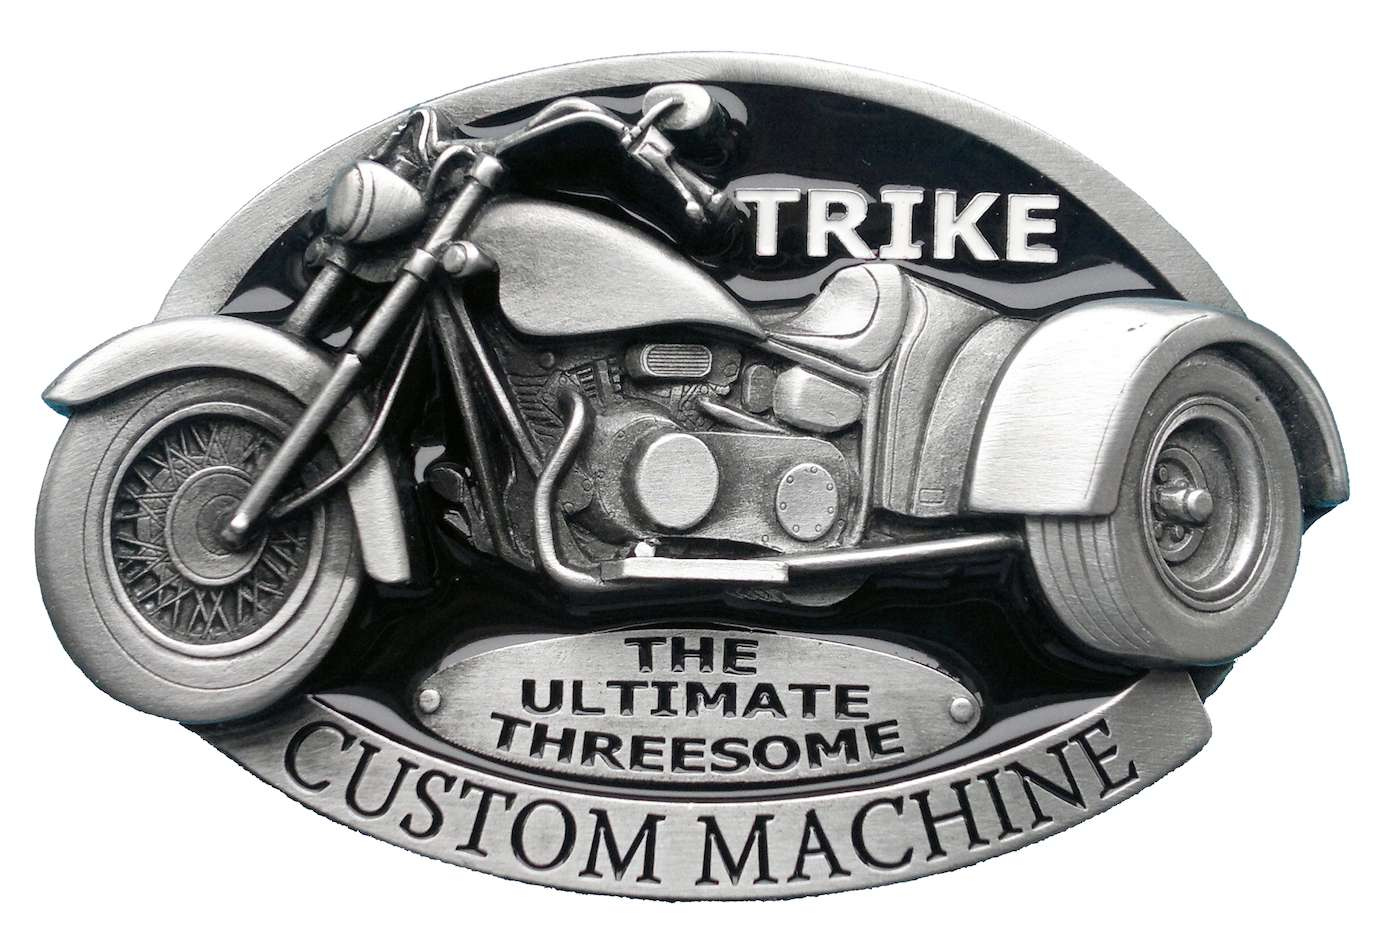 Trike Custom Machine Black Belt Buckle